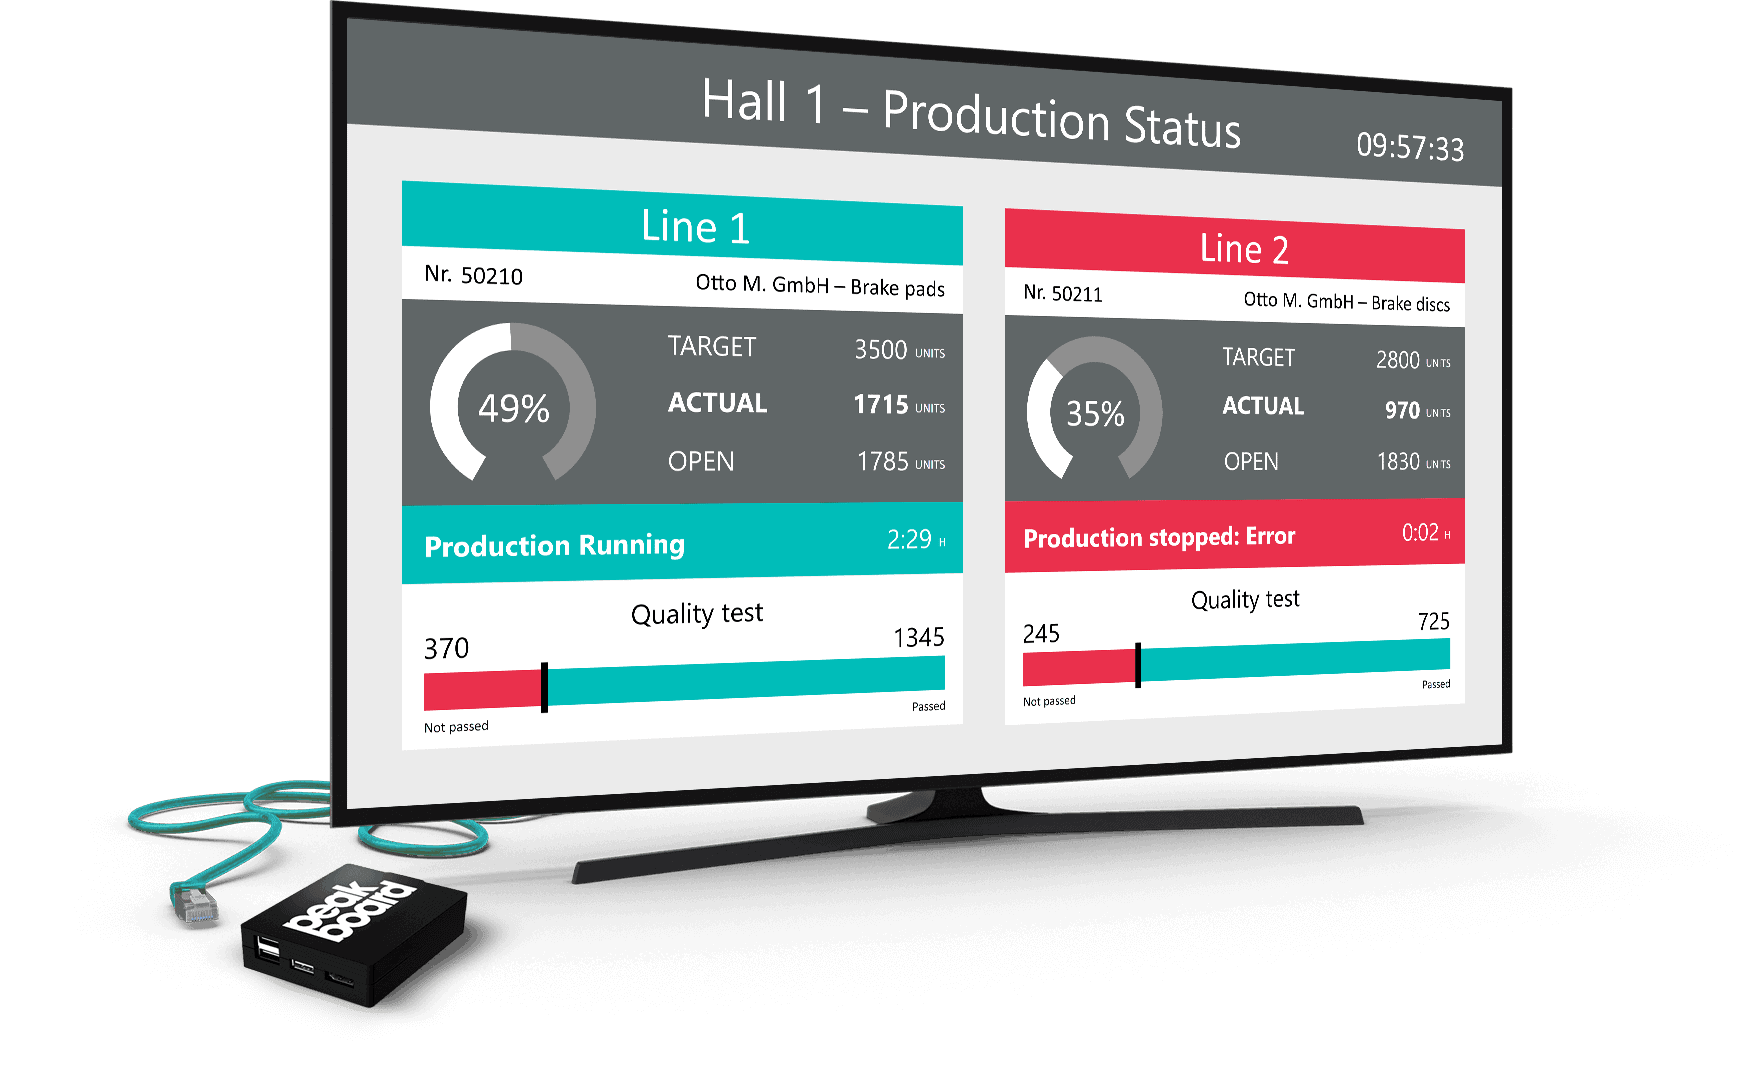 On this dashboard, the manufacturing status and order status of two production lines in a production hall is visualized in real time. Qualitative and quantitative key figures are displayed within the production process.